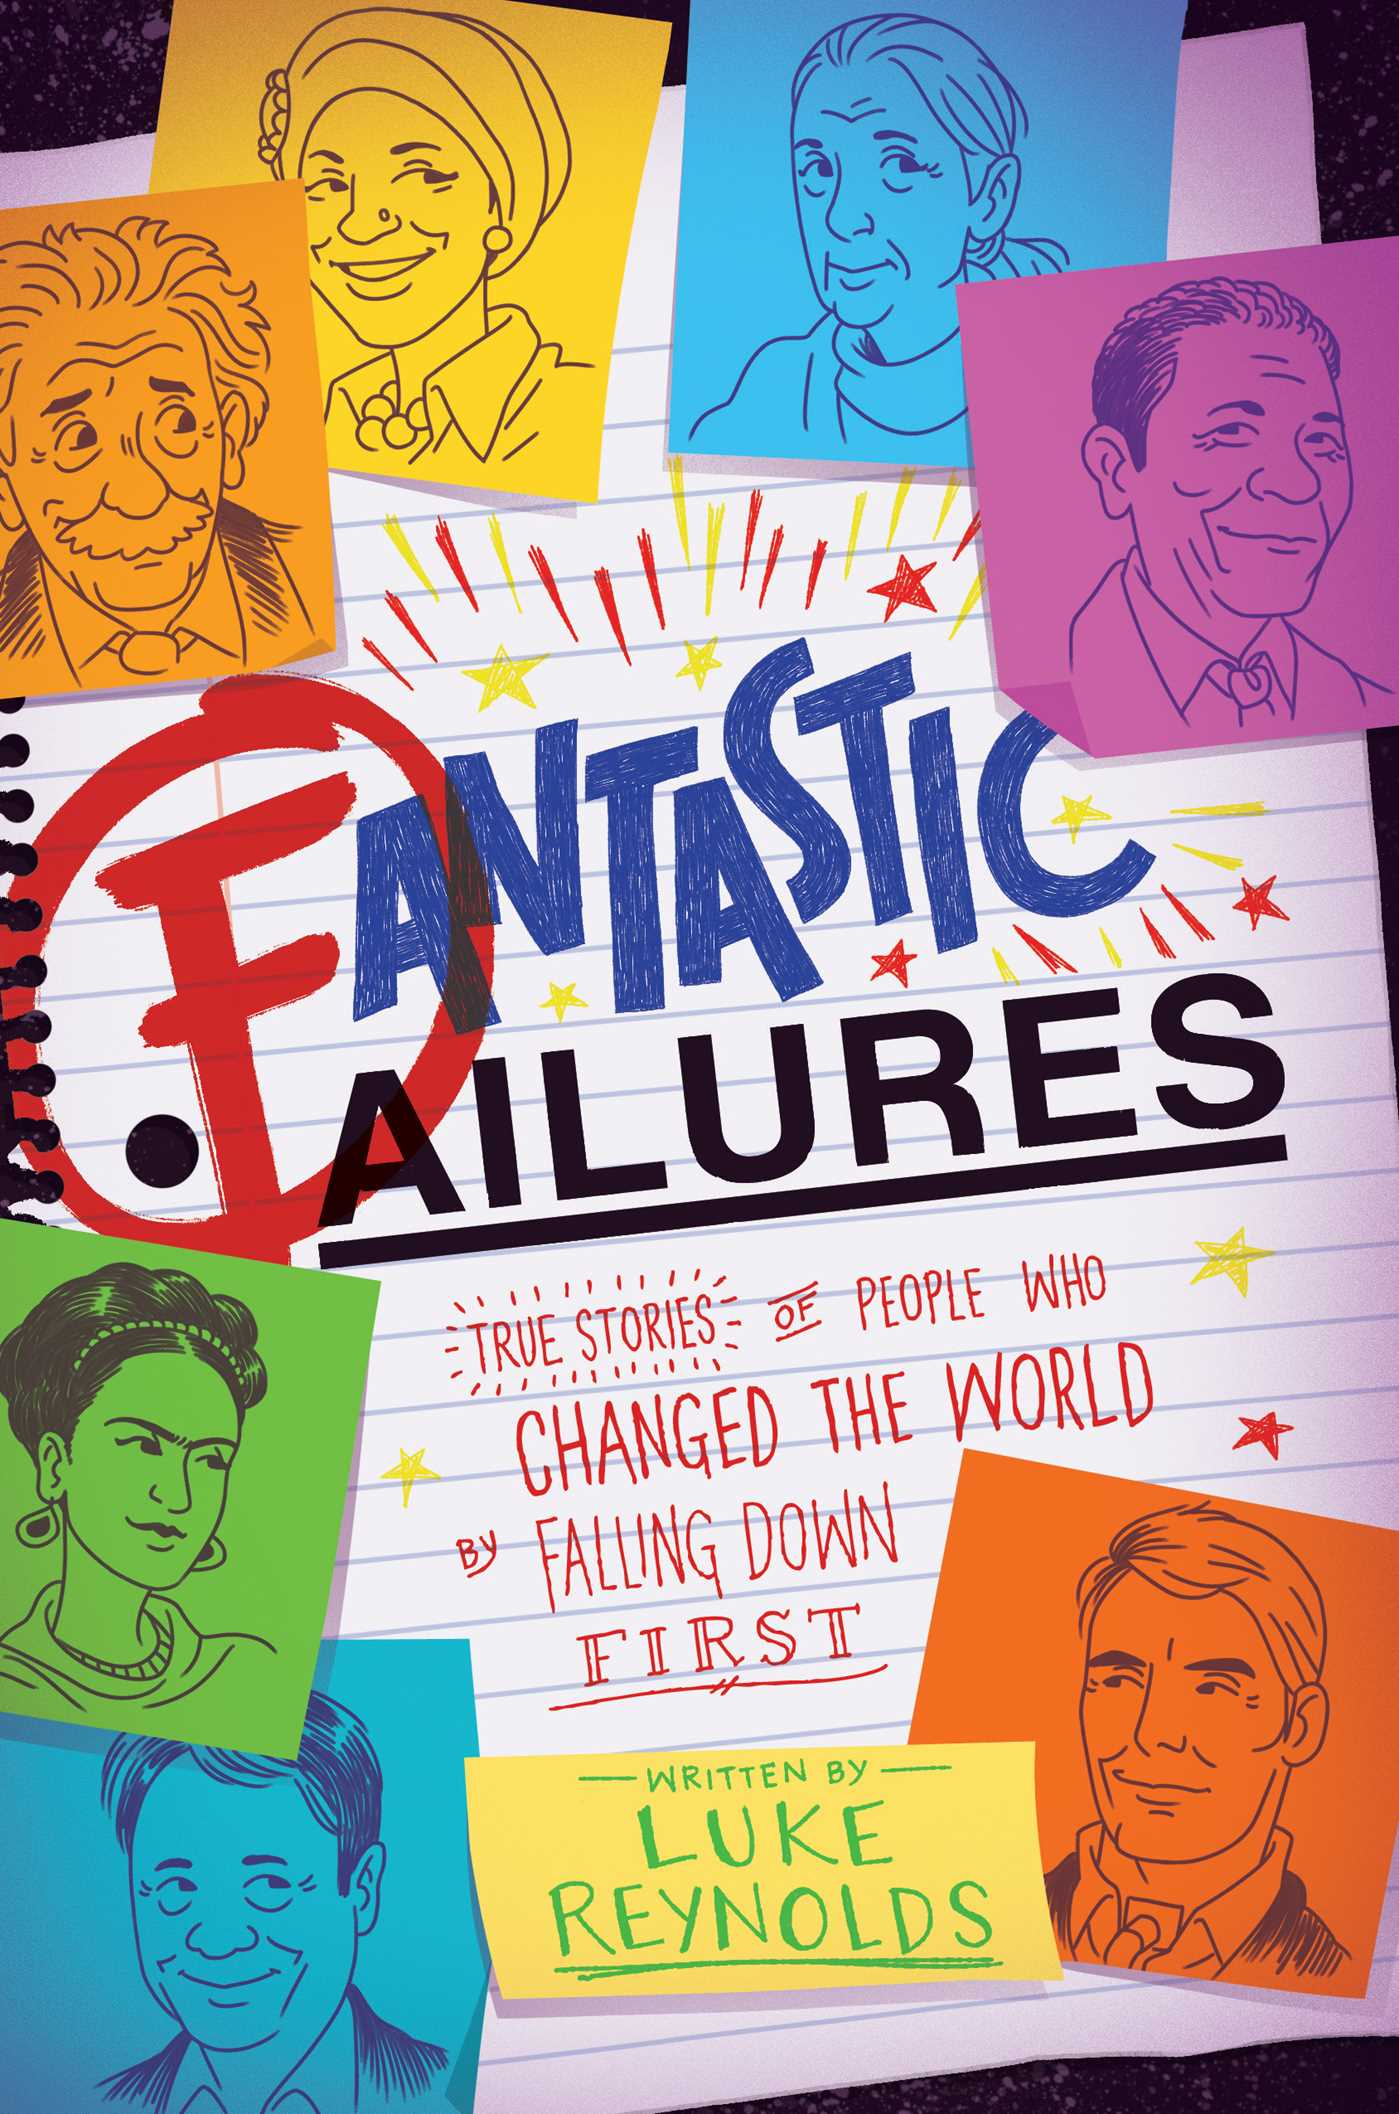 Fantastic failures 9781582706658 hr